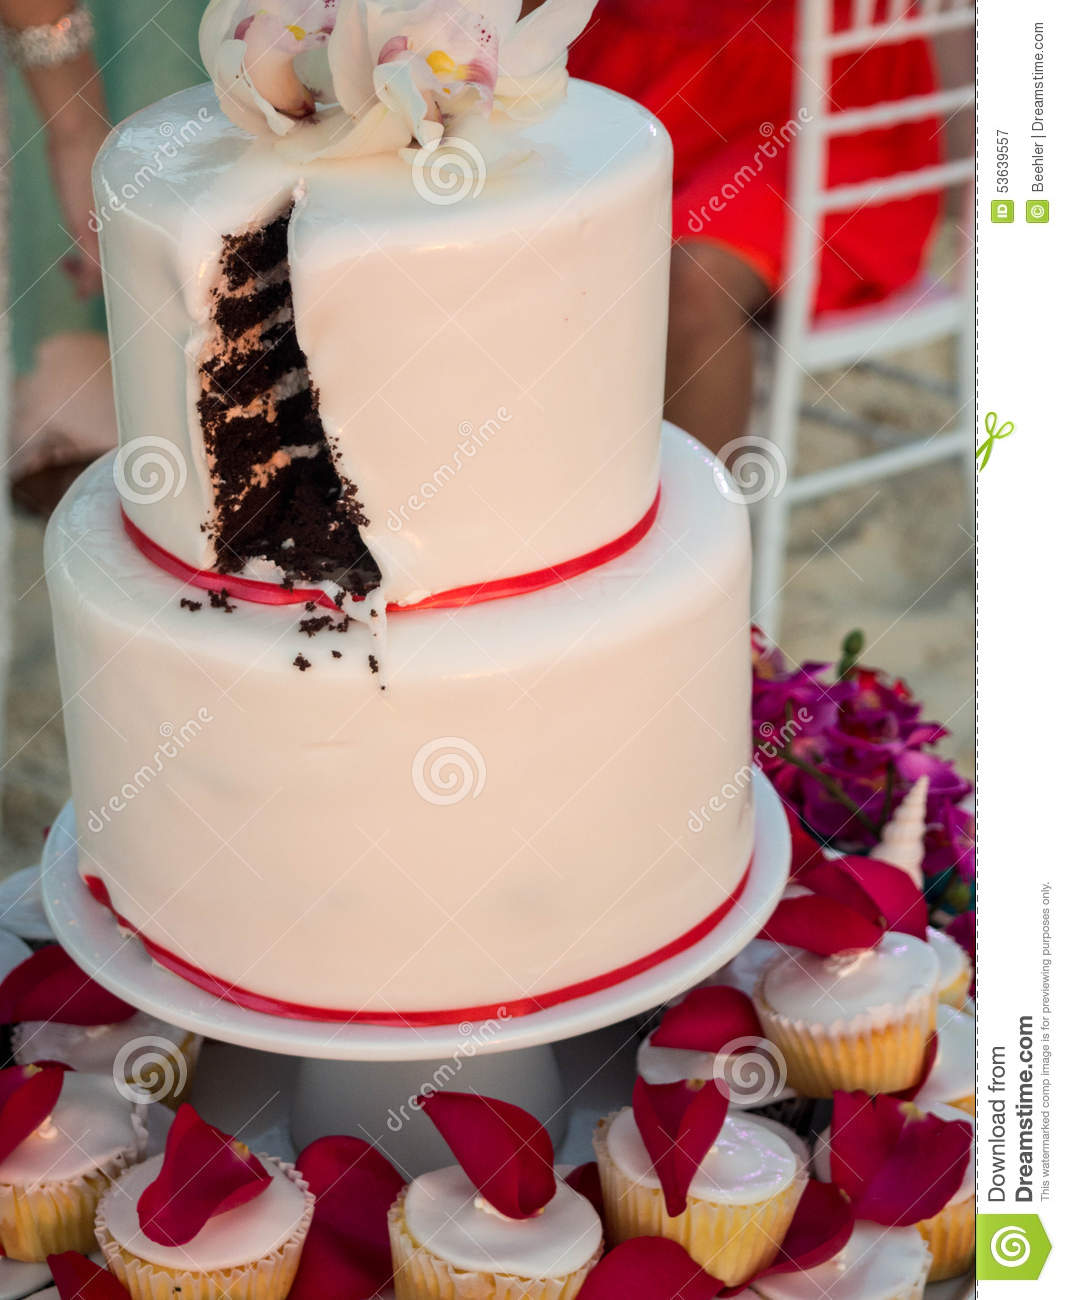 Cutting Up Wedding Cake How Do You Cut A Worst Toppers